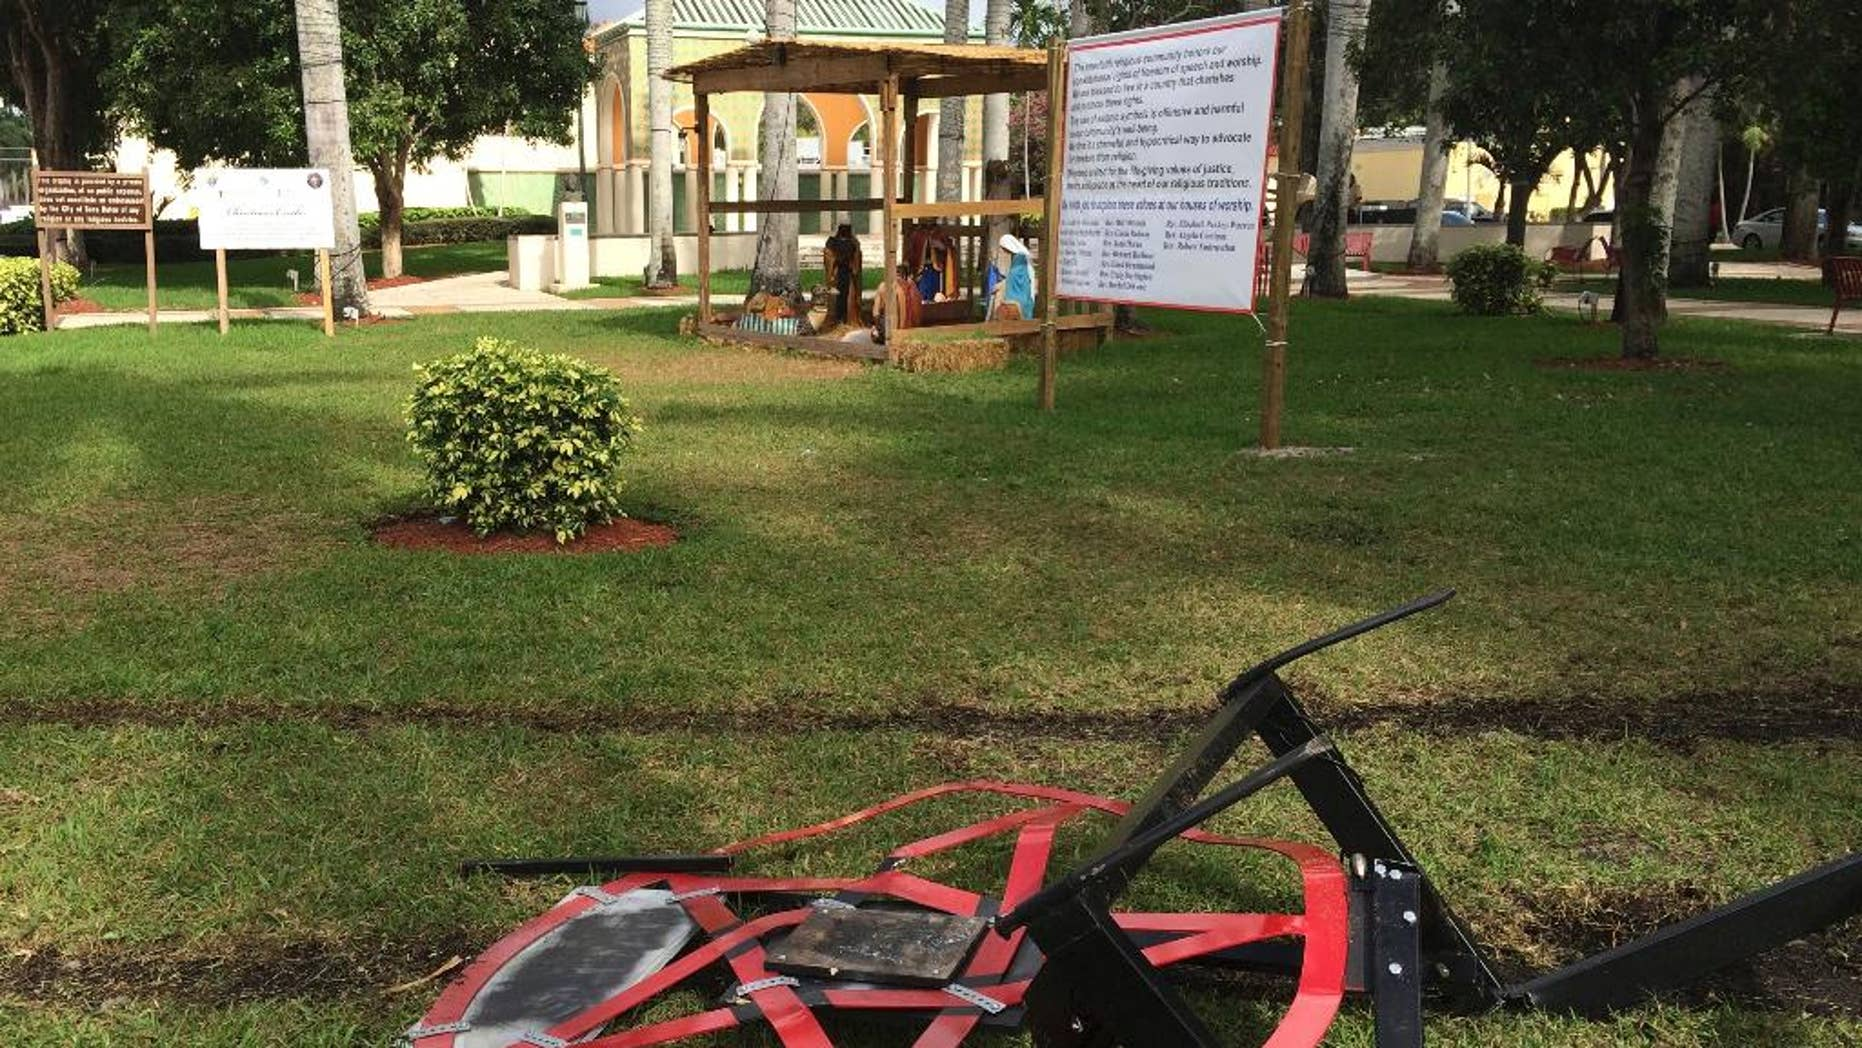 A satanic pentagram erected by atheist Preston Smith lies damaged in Boca Raton's Sanborn Square, Fla. on Tuesday, Dec. 20, 2016. Smith erected the pentagram earlier this month to protest a Nativity scene place in the city-owned square. Vandals apparently dragged down the 300-pound statue using a chain attached to a vehicle. (AP Photo/Terry Spencer)